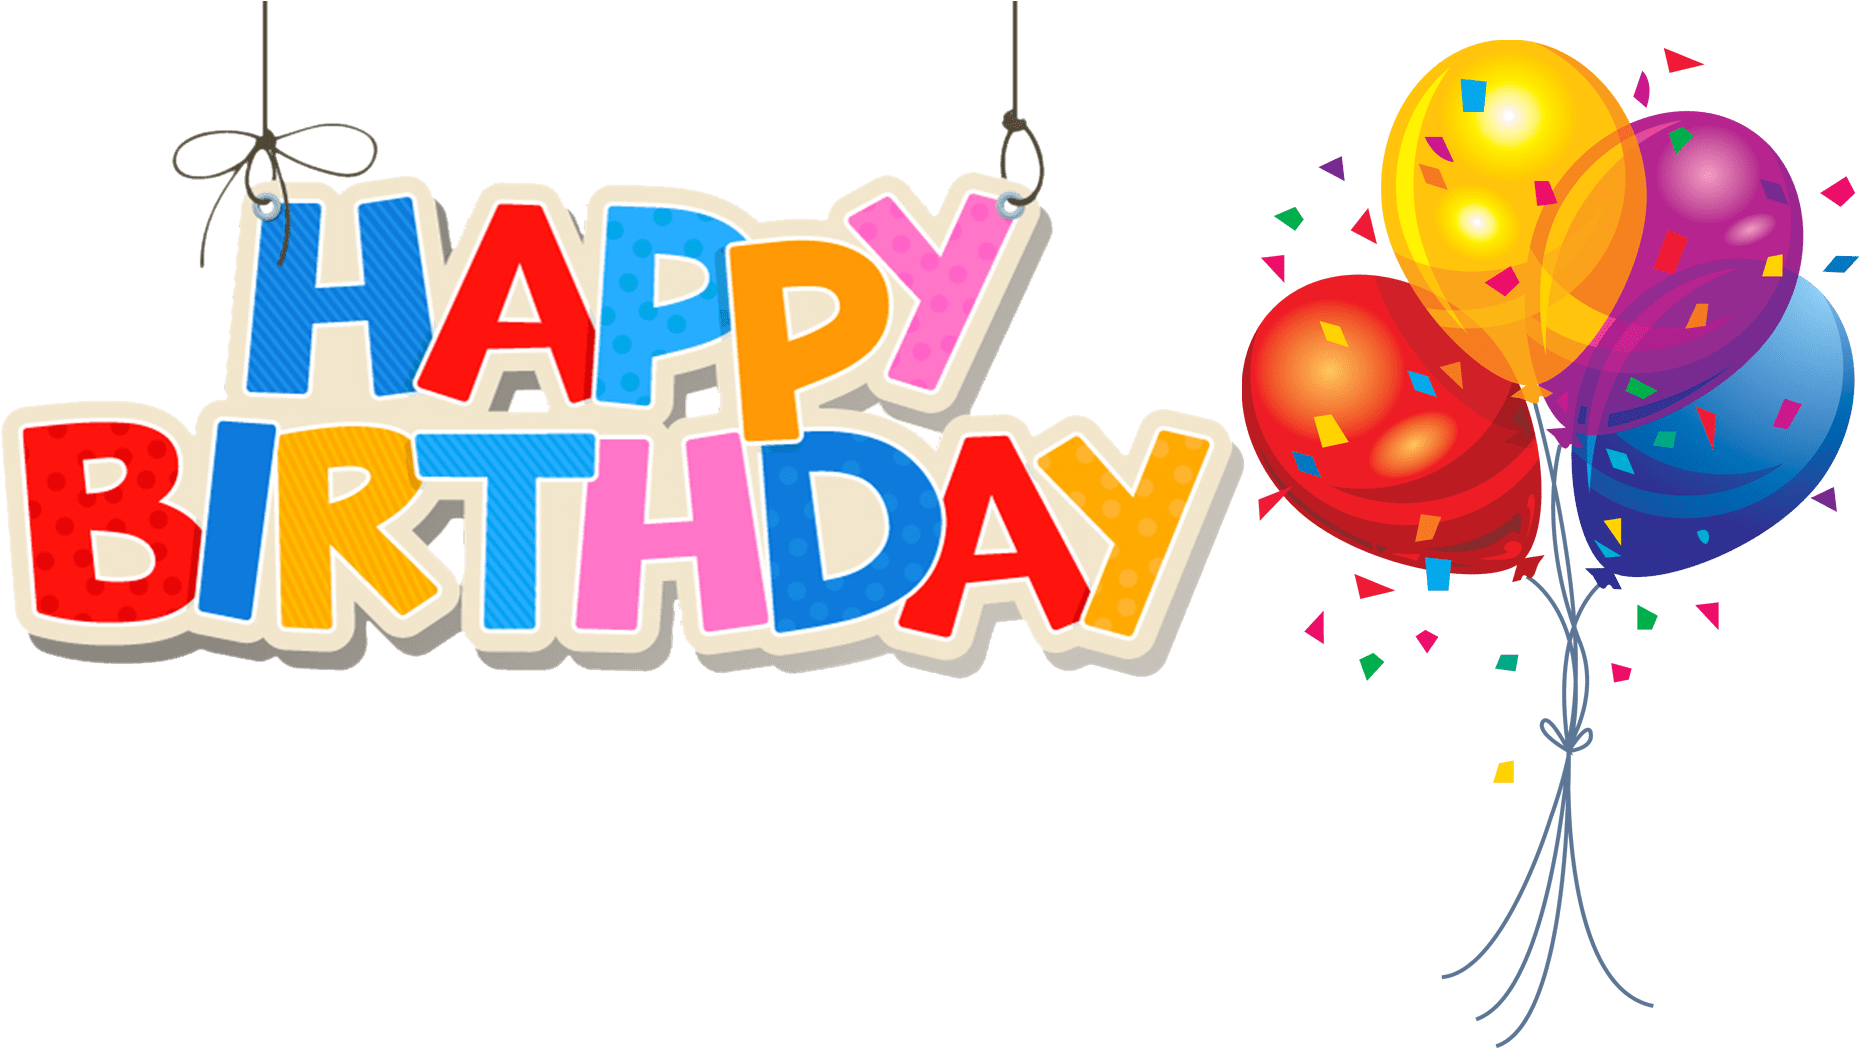 Download Happy Birthday Makayla Source Happy Birthday Name Png Full Size Png Image Pngkit